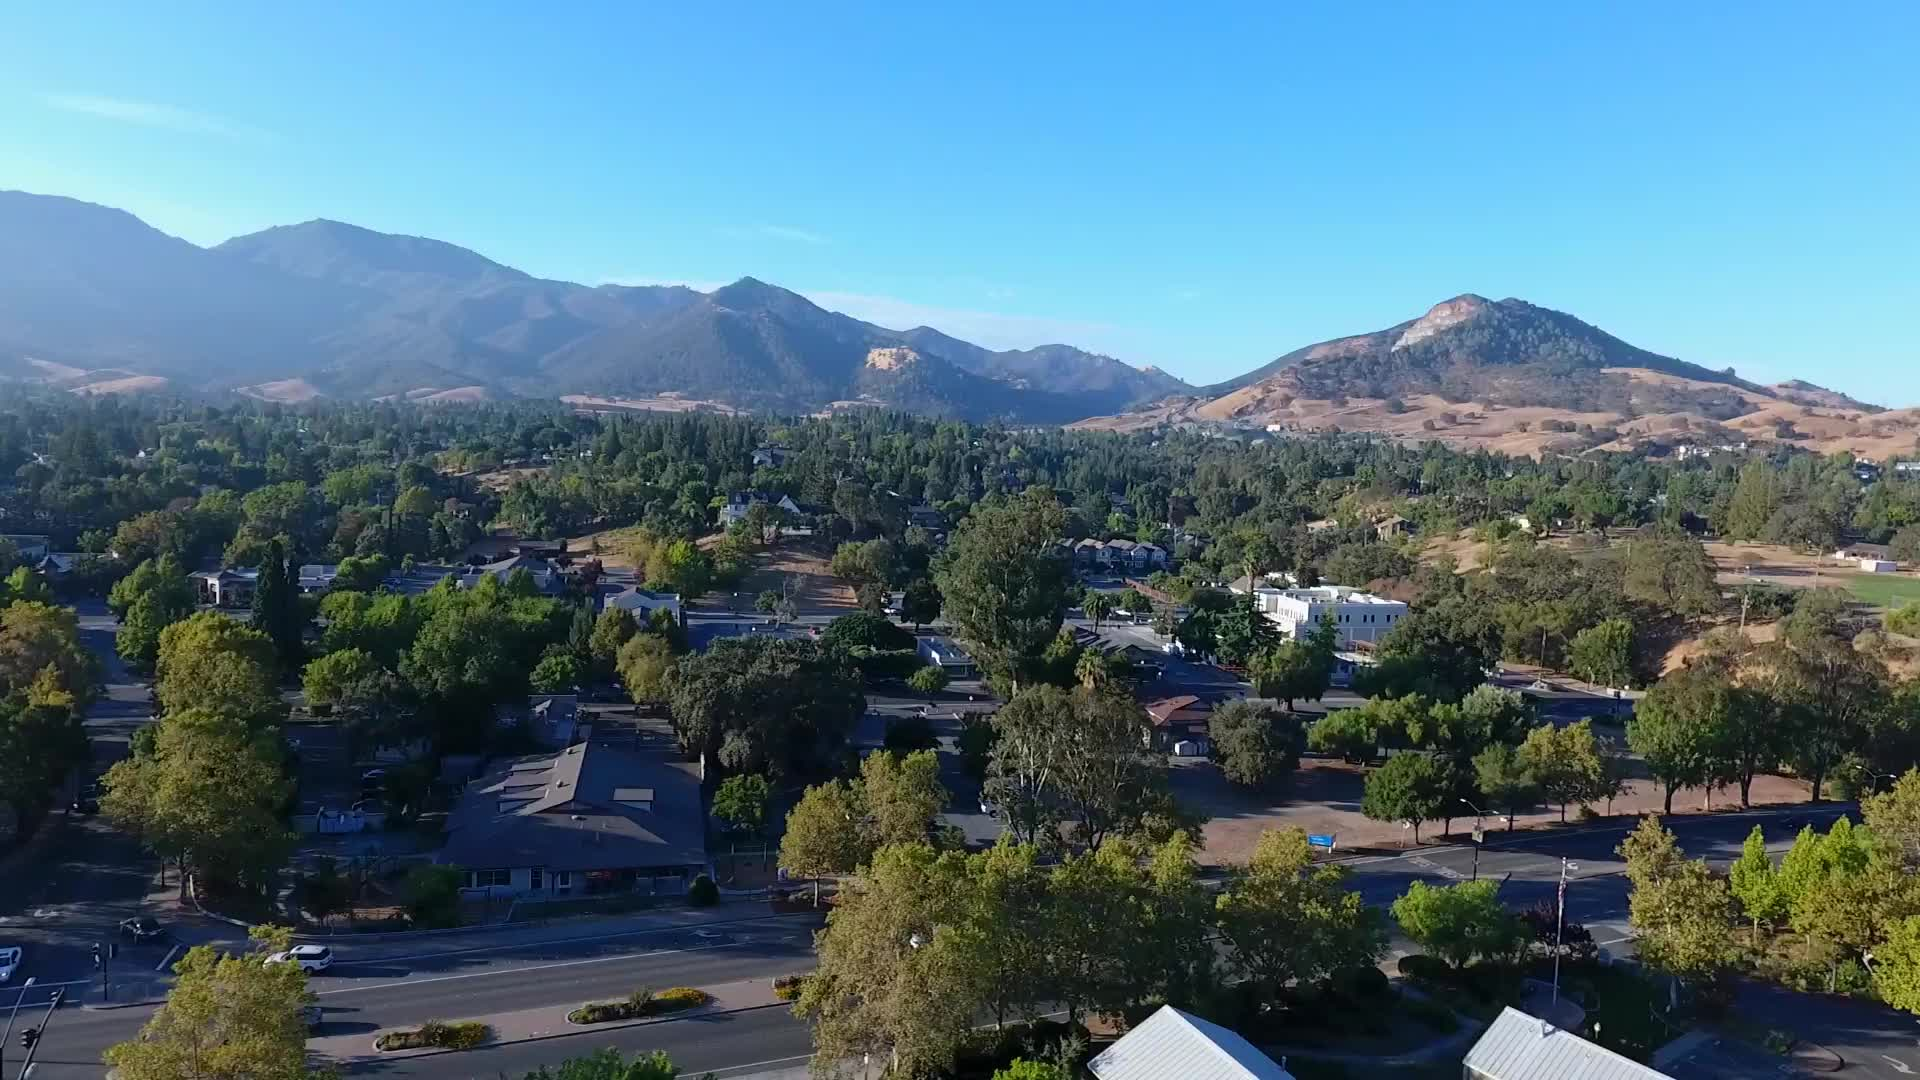 Aerial view of Mt Diablo